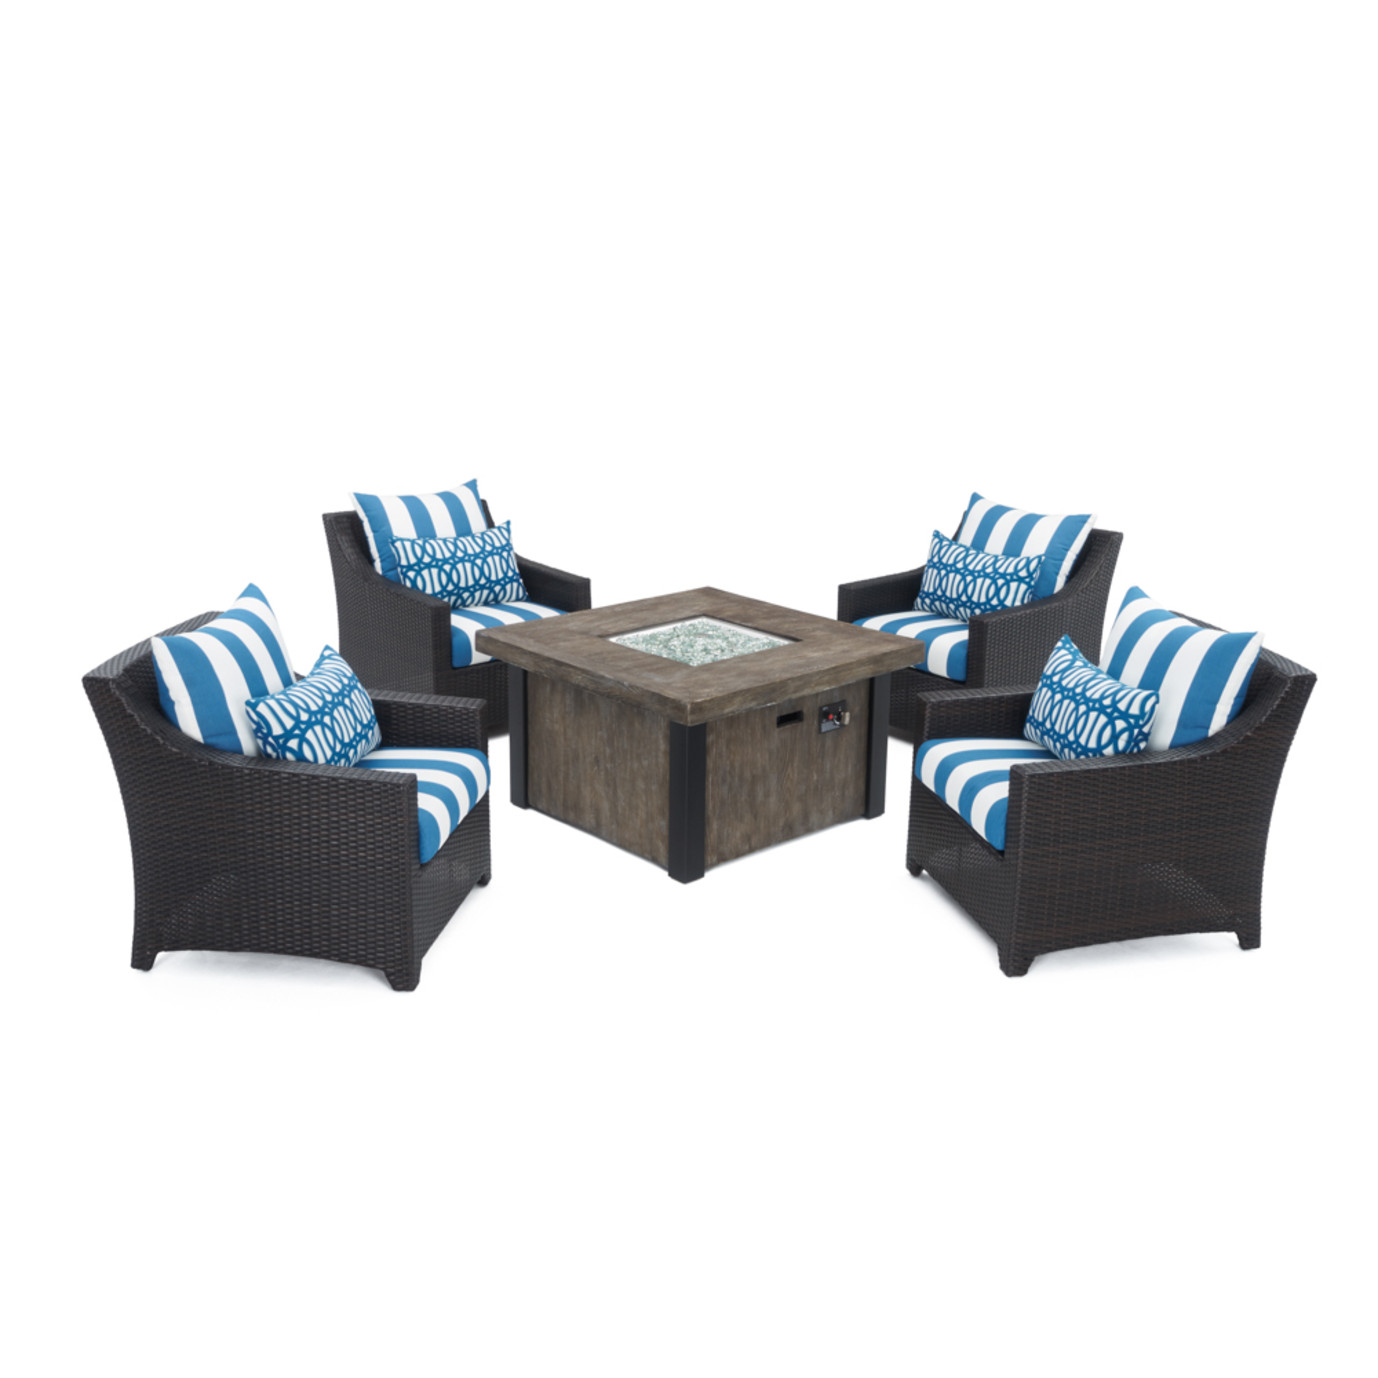 Deco™ 5pc Fire Chat Set - Regatta Blue